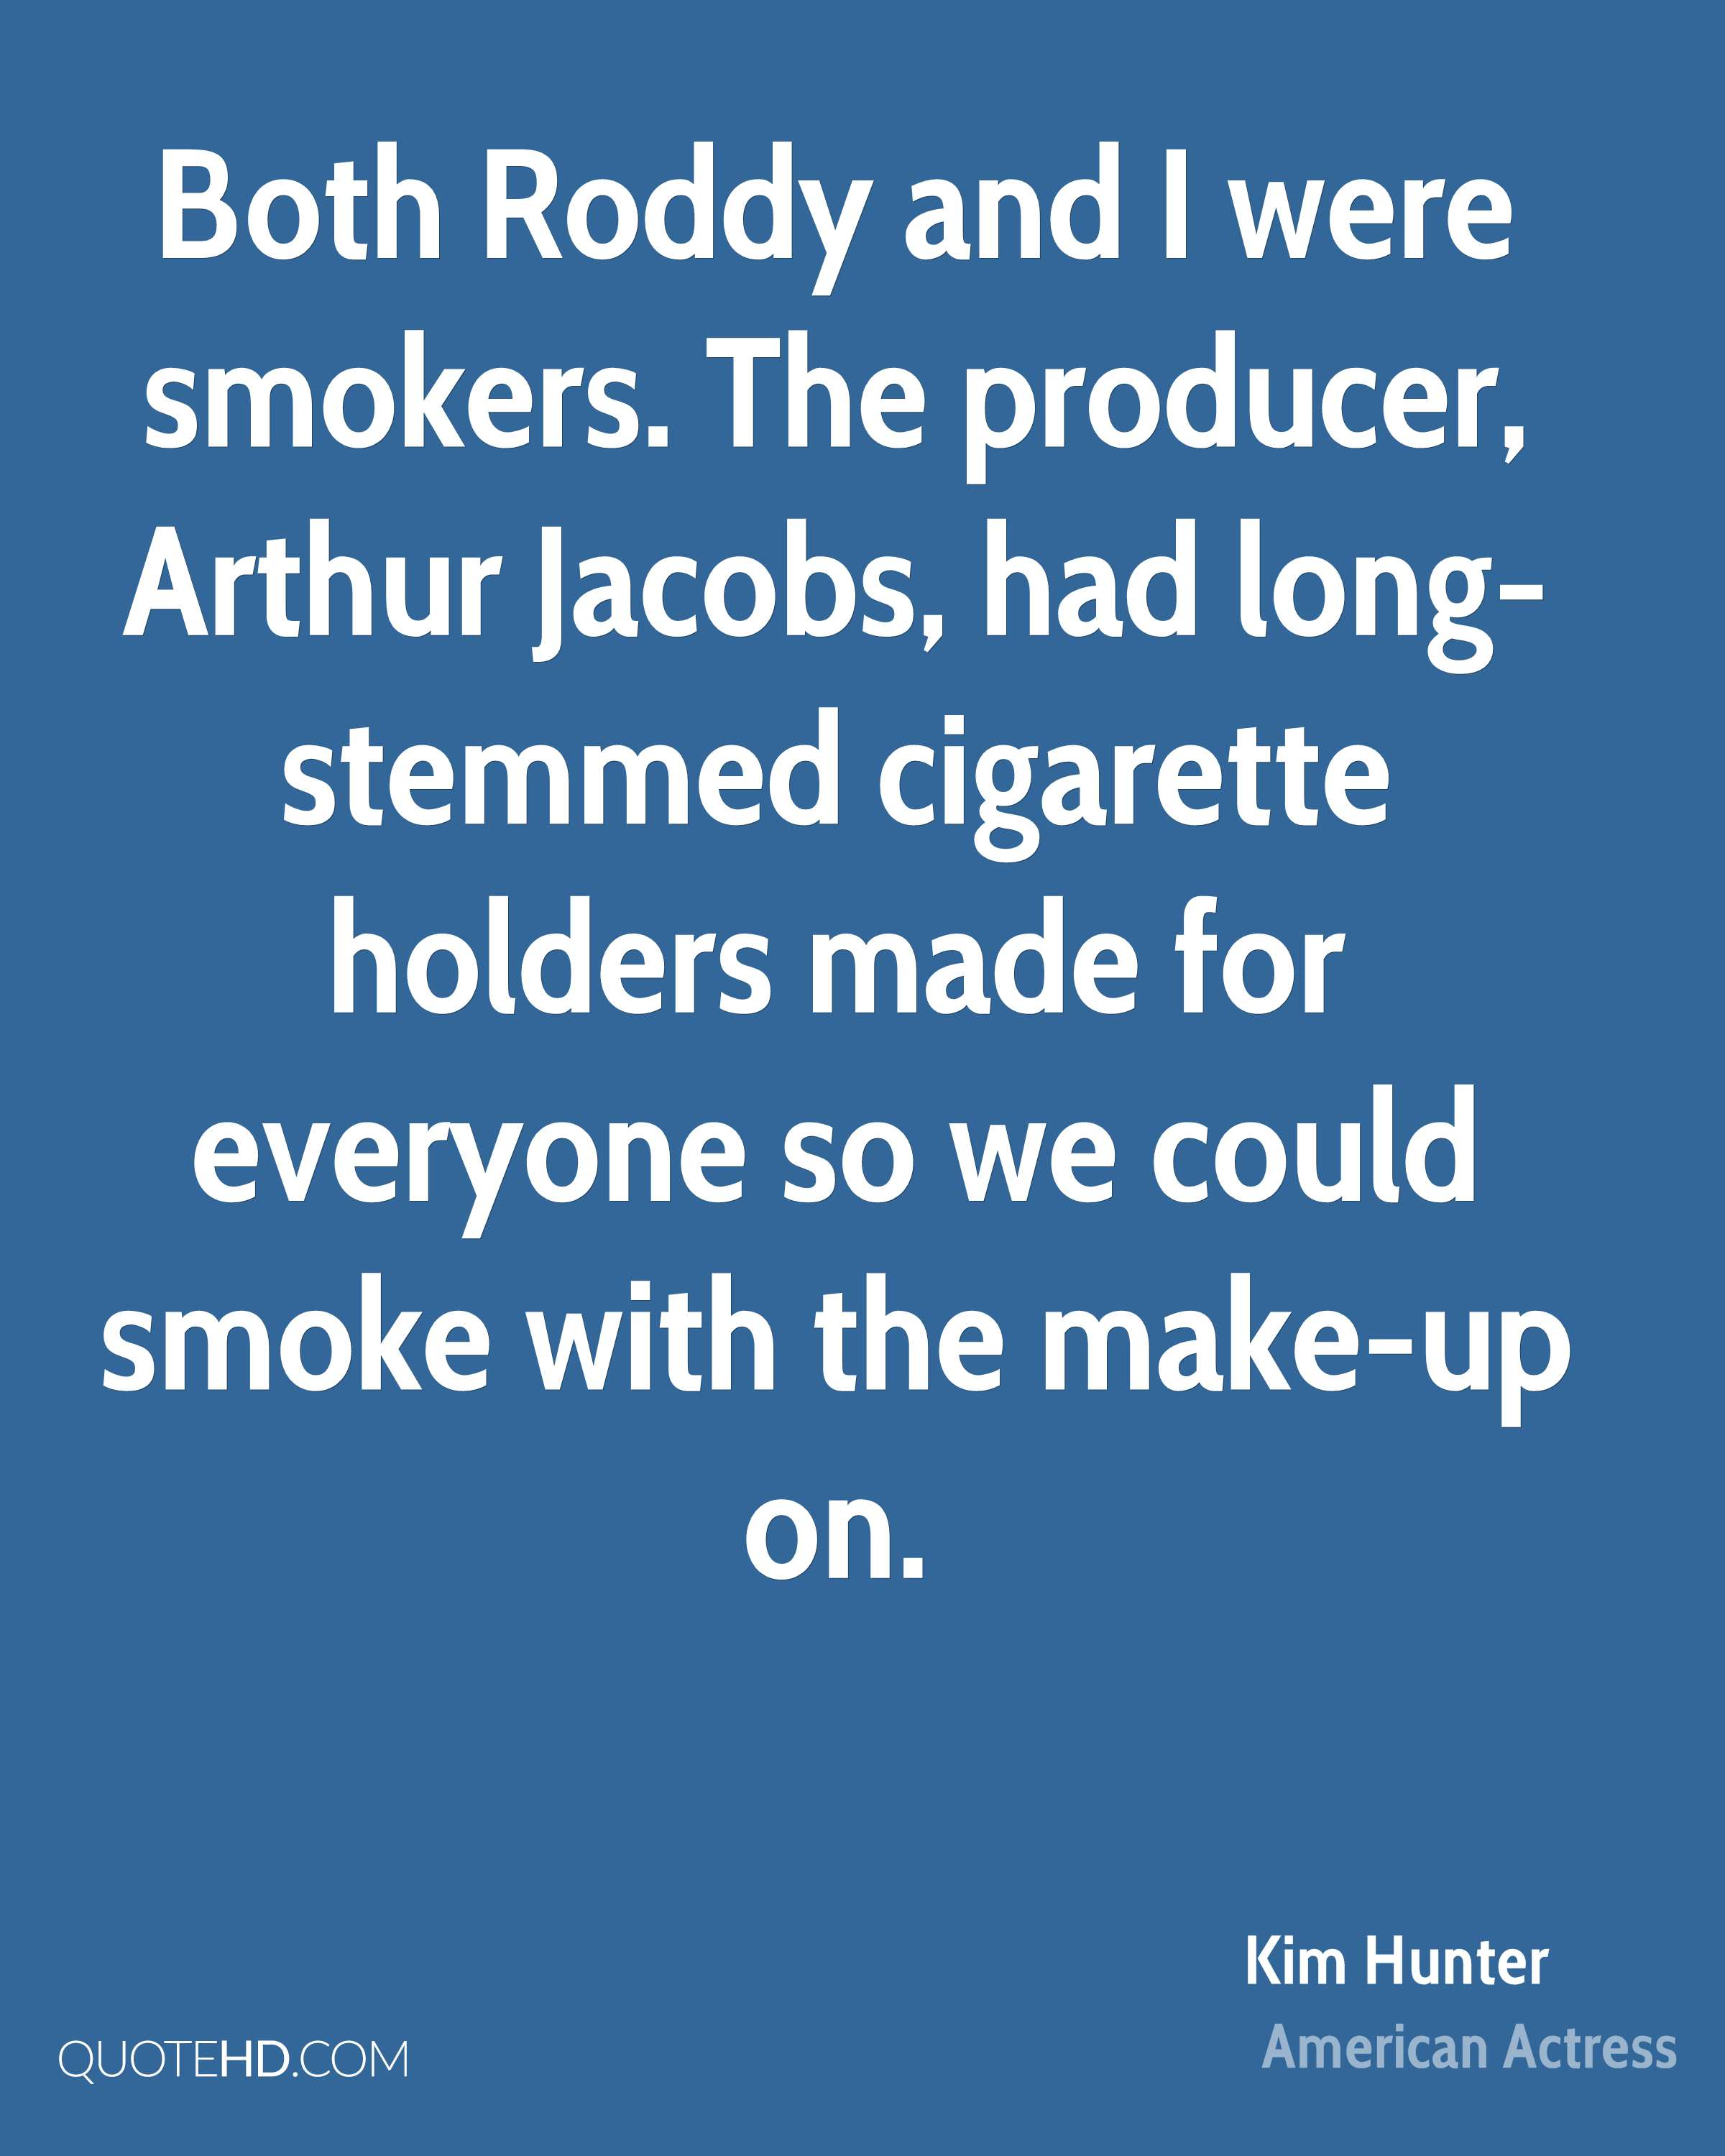 Both Roddy and I were smokers. The producer, Arthur Jacobs, had long-stemmed cigarette holders made for everyone so we could smoke with the make-up on.